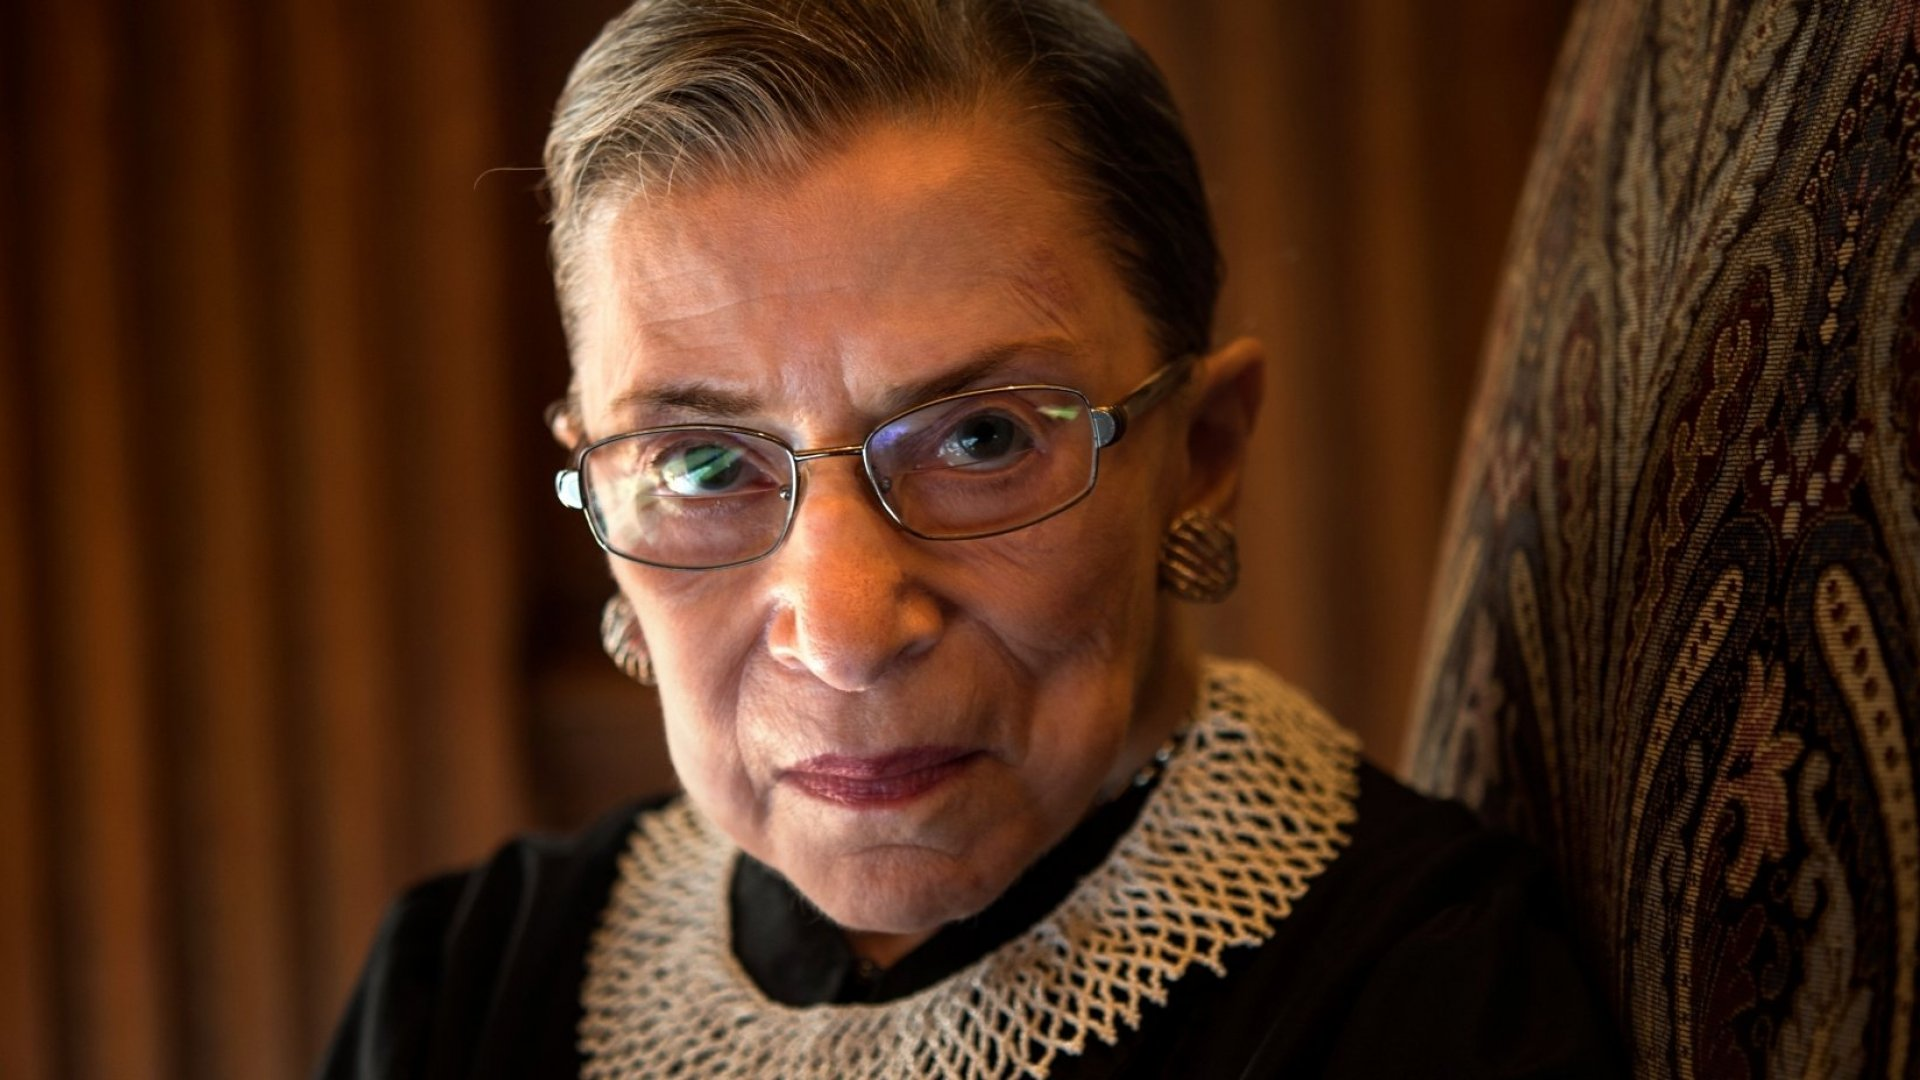 This 1 Quote From Ruth Bader Ginsburg Reveals the Secret to 'Having It All' in Life